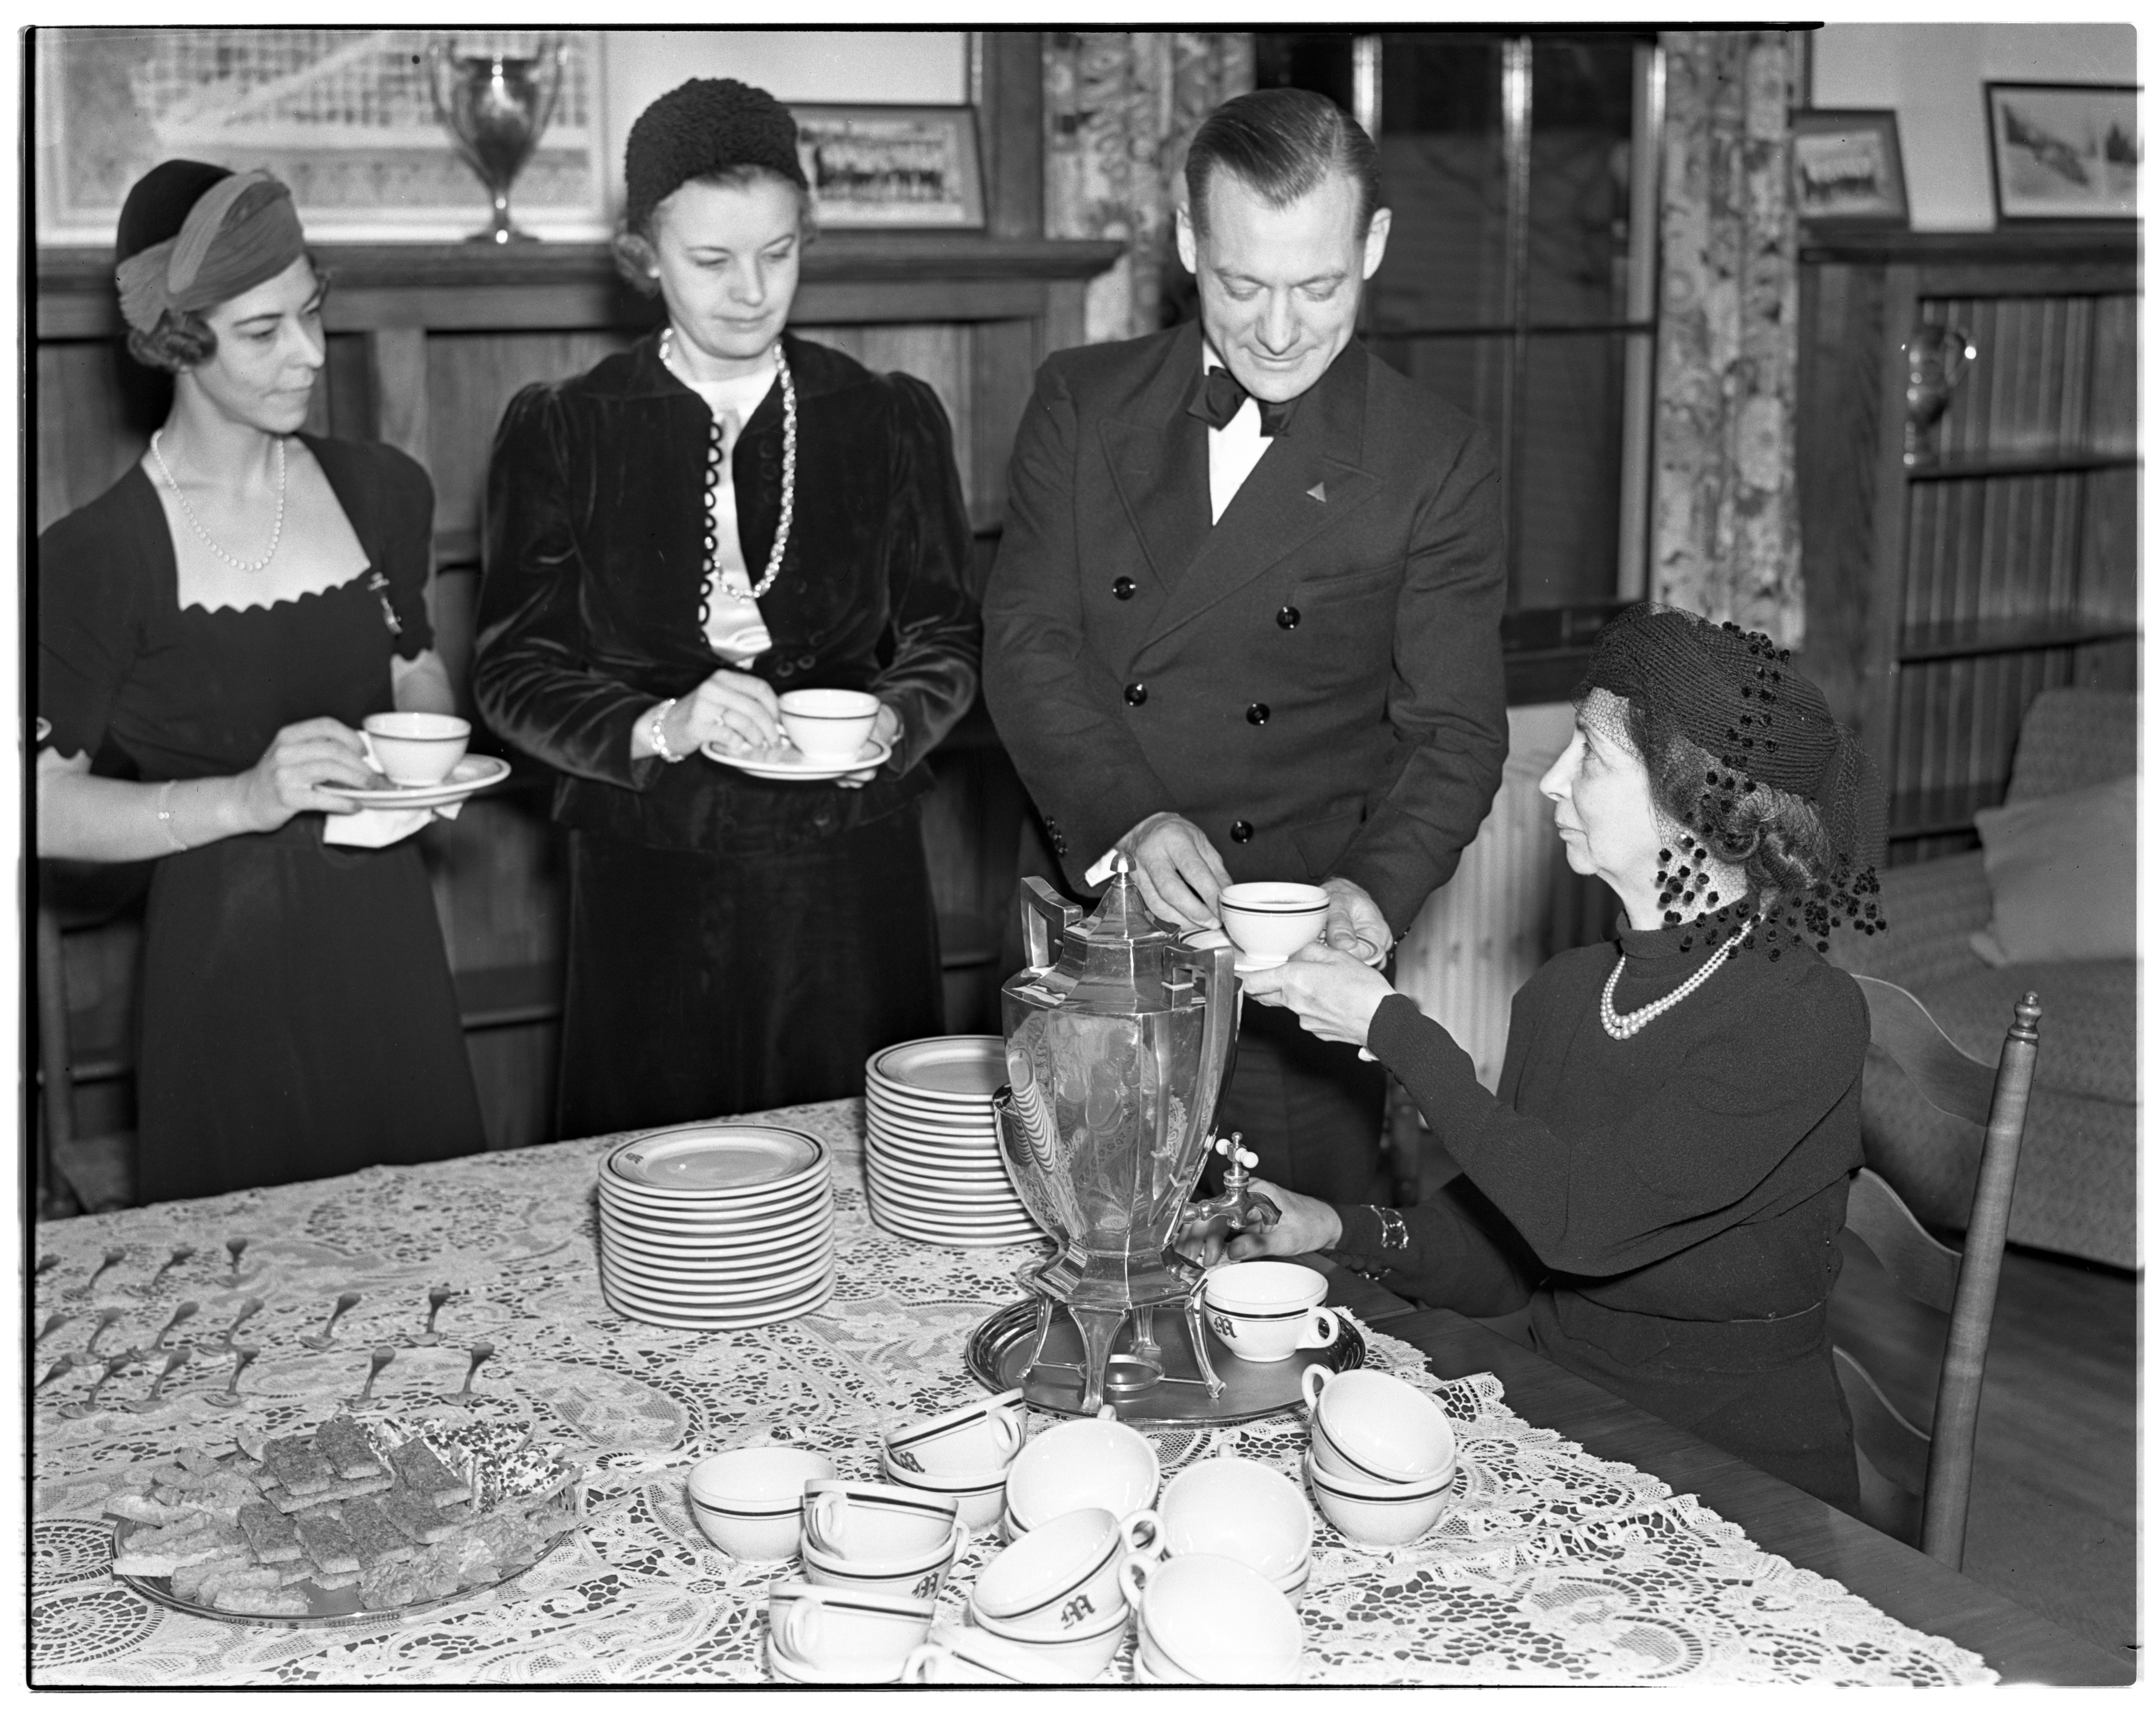 Tea for Munroe Smith, Mrs. Hunter, Mrs. Furstenberg and Mrs. Ruthven in a Youth Hostel image